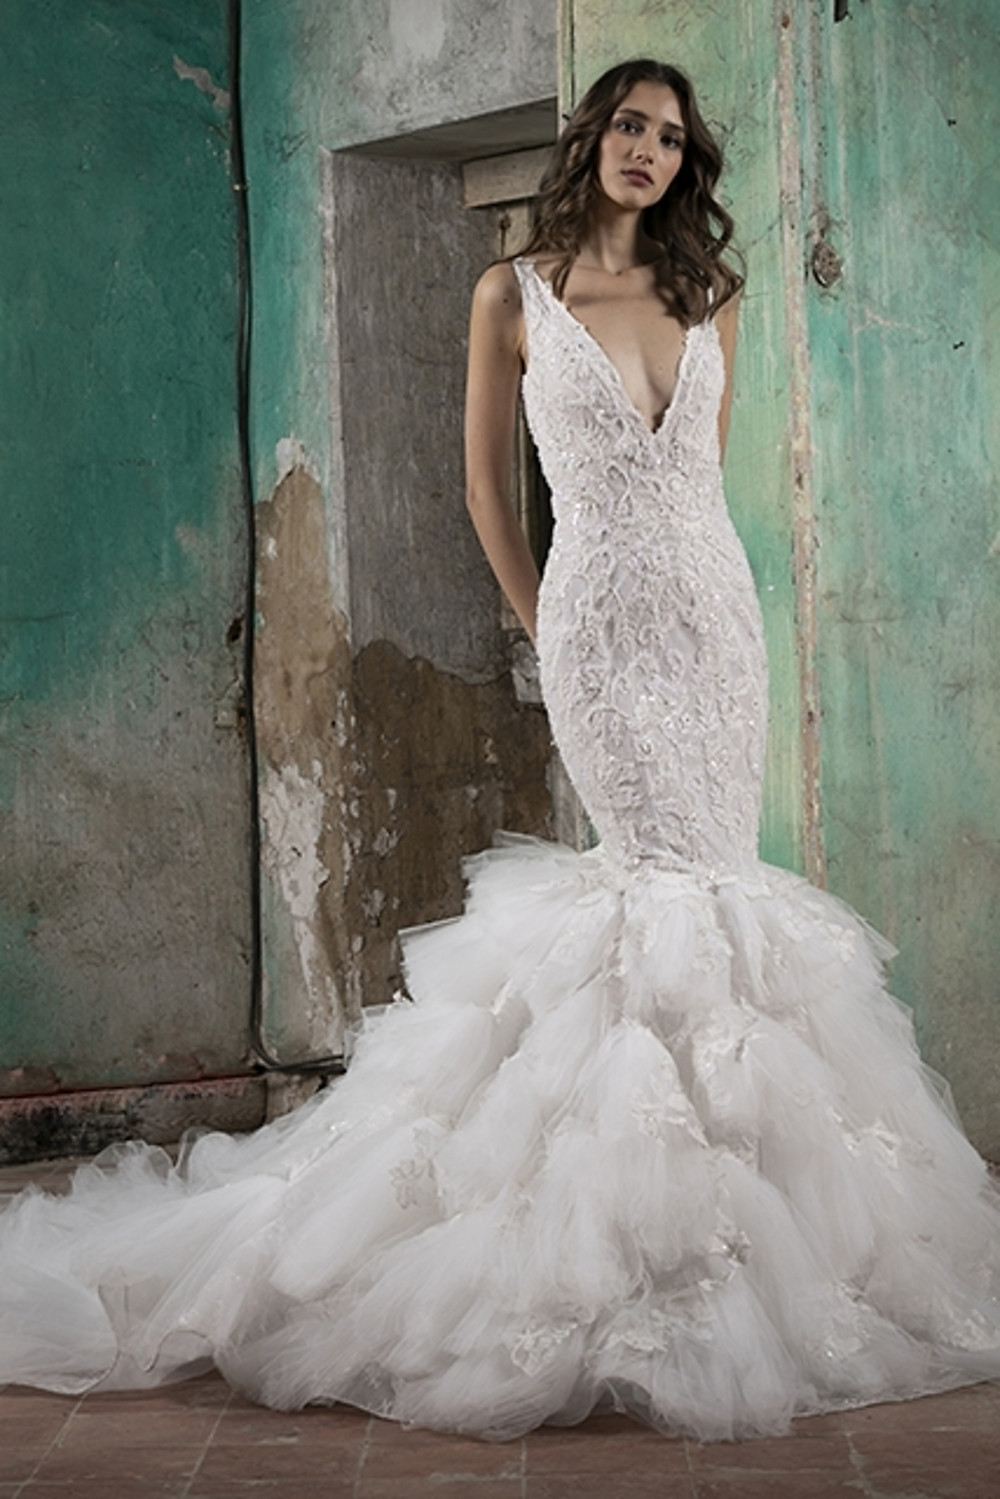 A fitted mermaid wedding gown enriched with beaded embroidery accentuated with tulle detailing around the hem